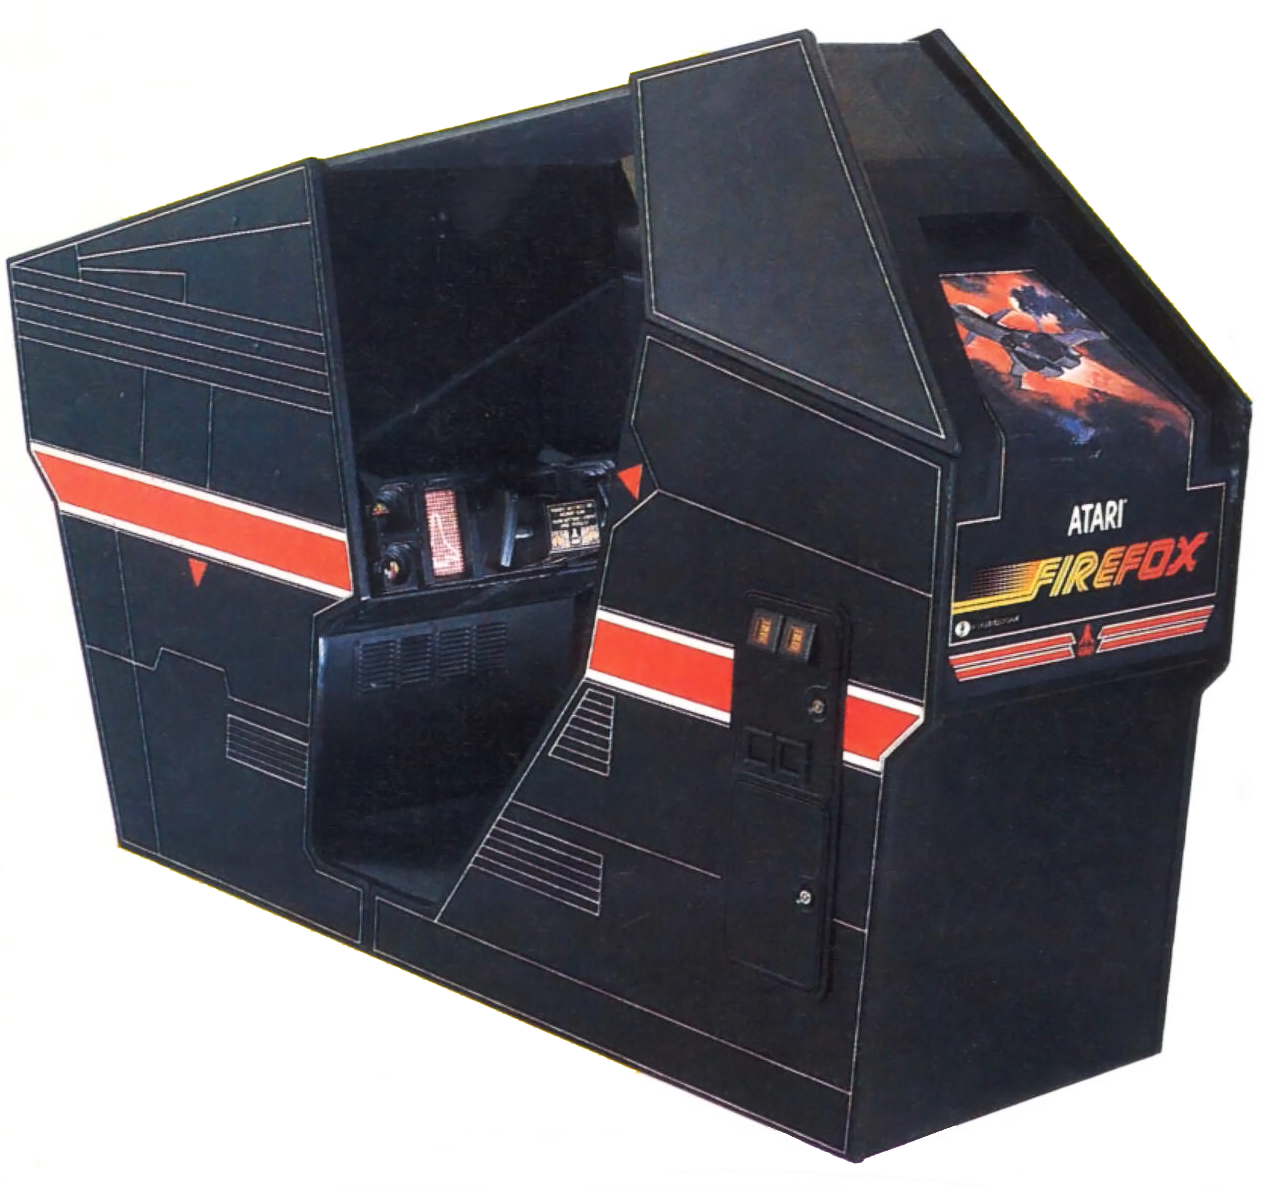 Cabinet for Firefox, a laser arcade game by Atari